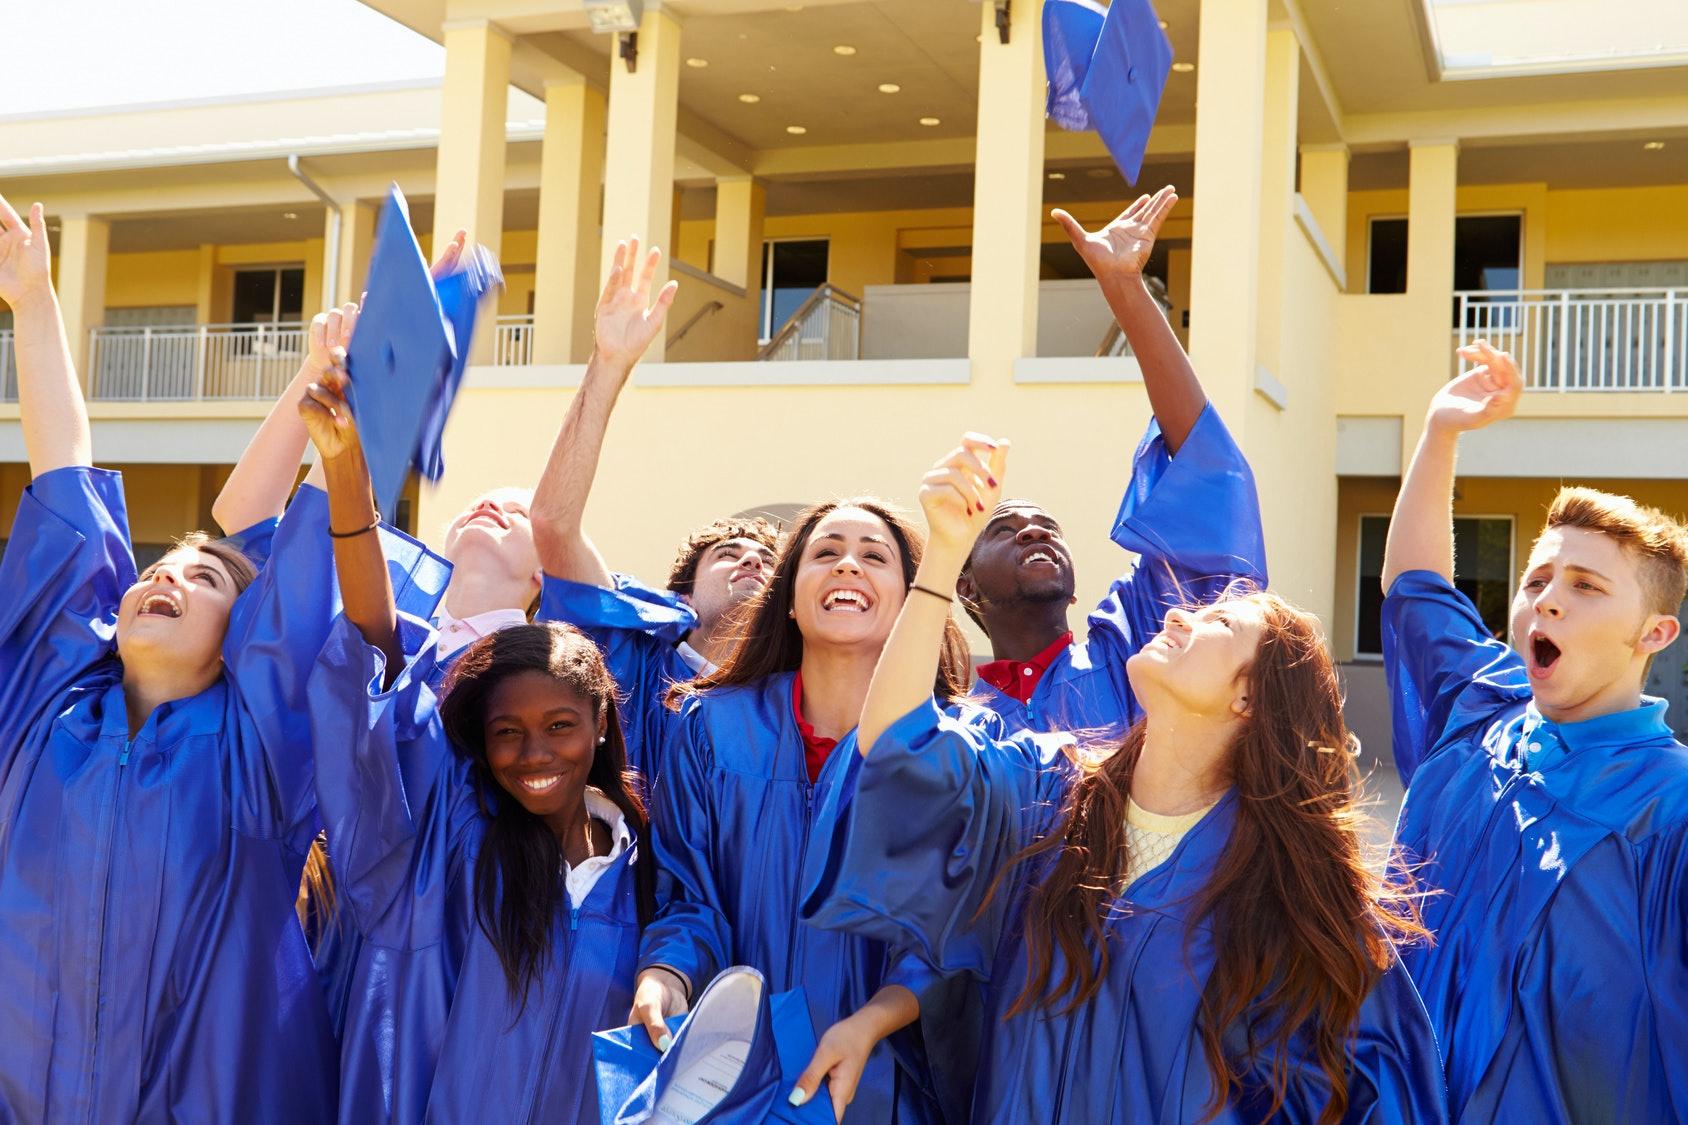 motivational high school graduation quotes to set your grad up